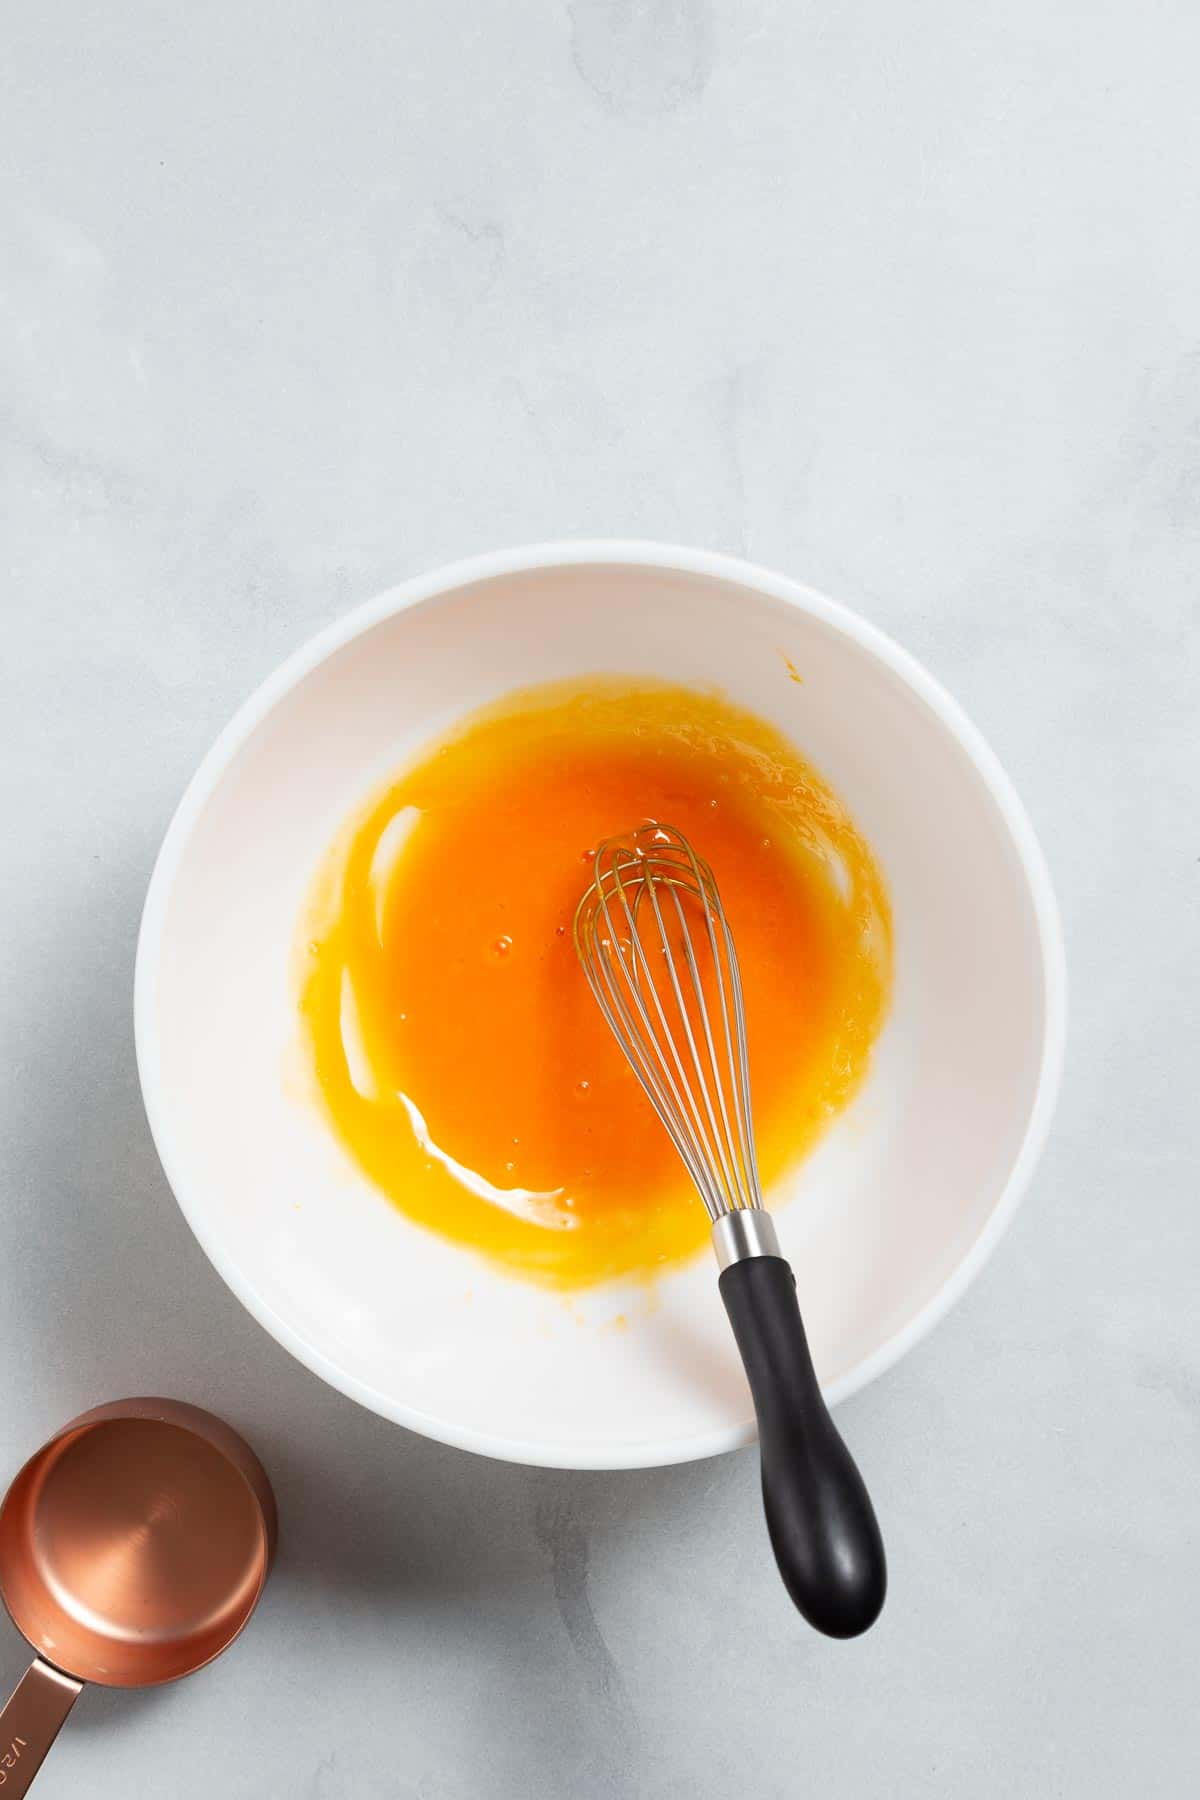 White mixing bowl with egg yolks and a whisk